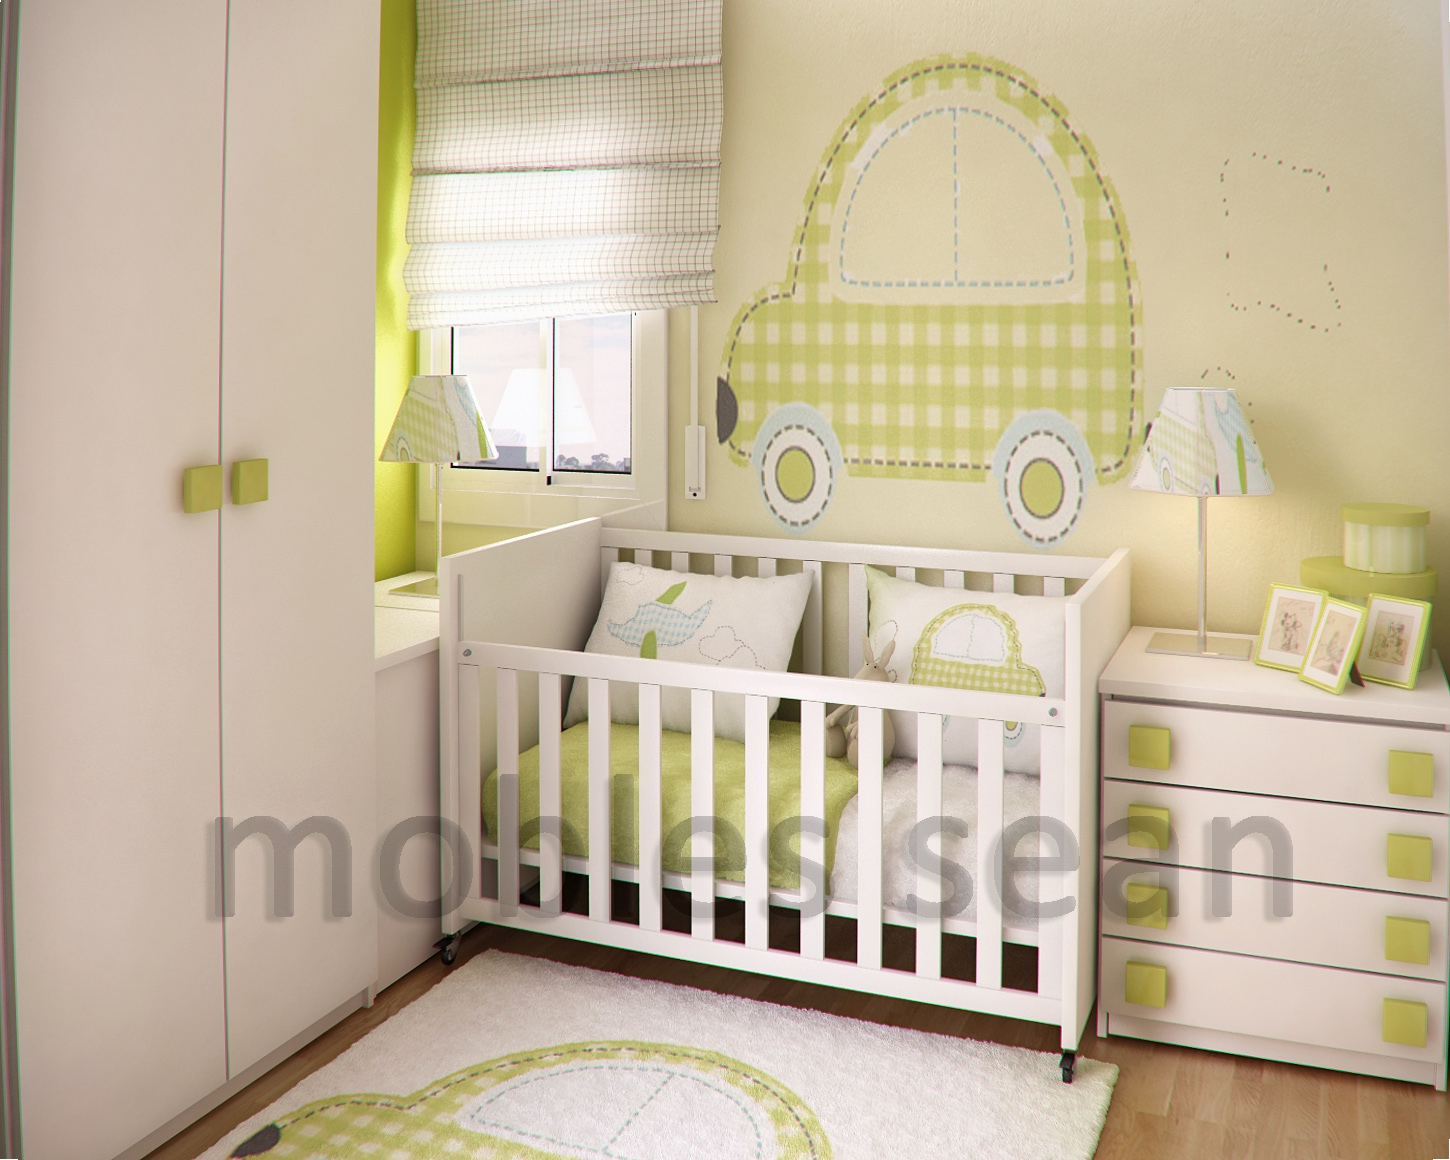 Space saving designs for small kids rooms - Baby room ideas small spaces property ...